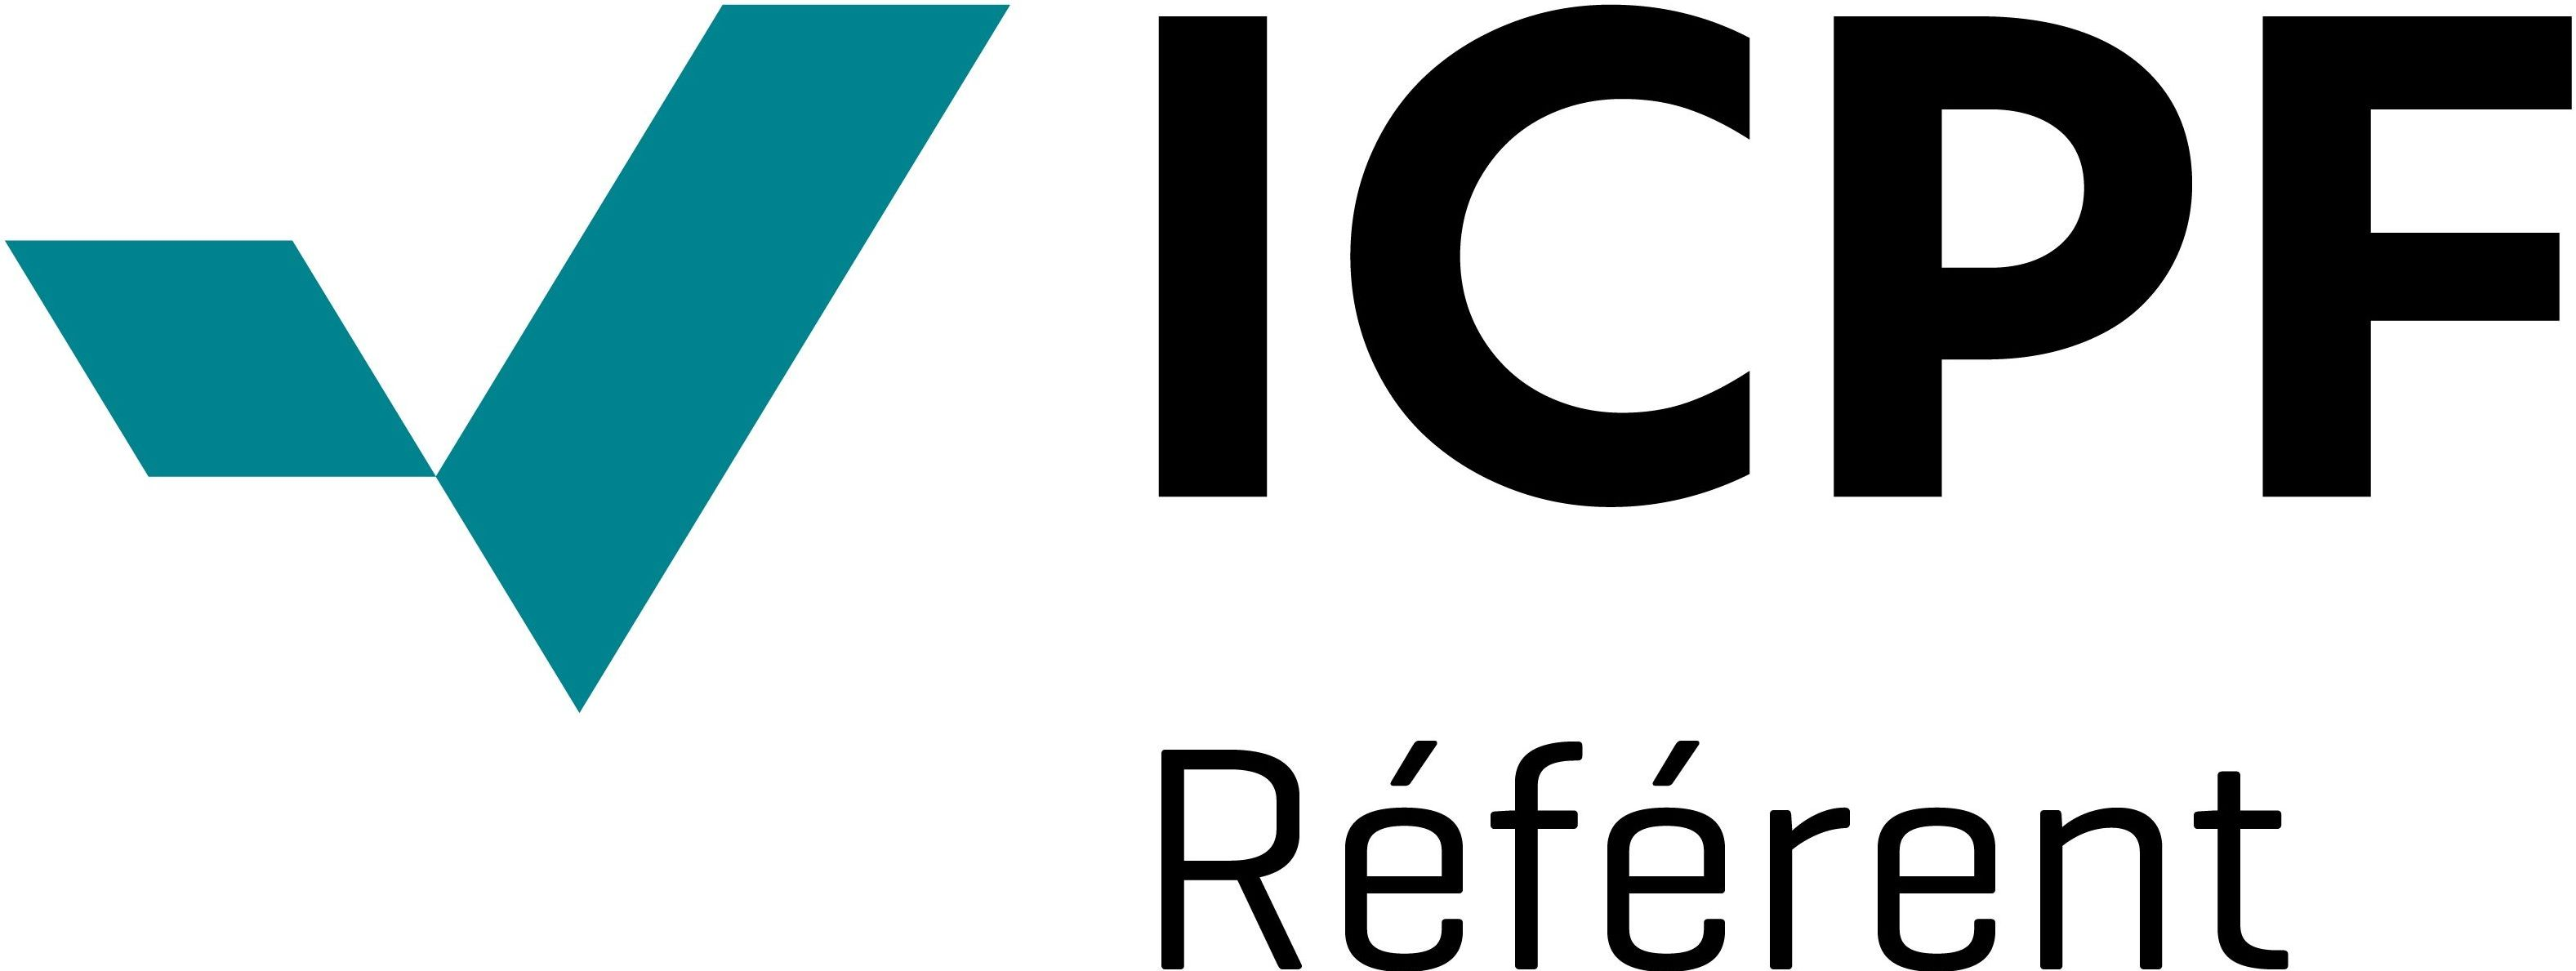 LOGO Referent ICPF